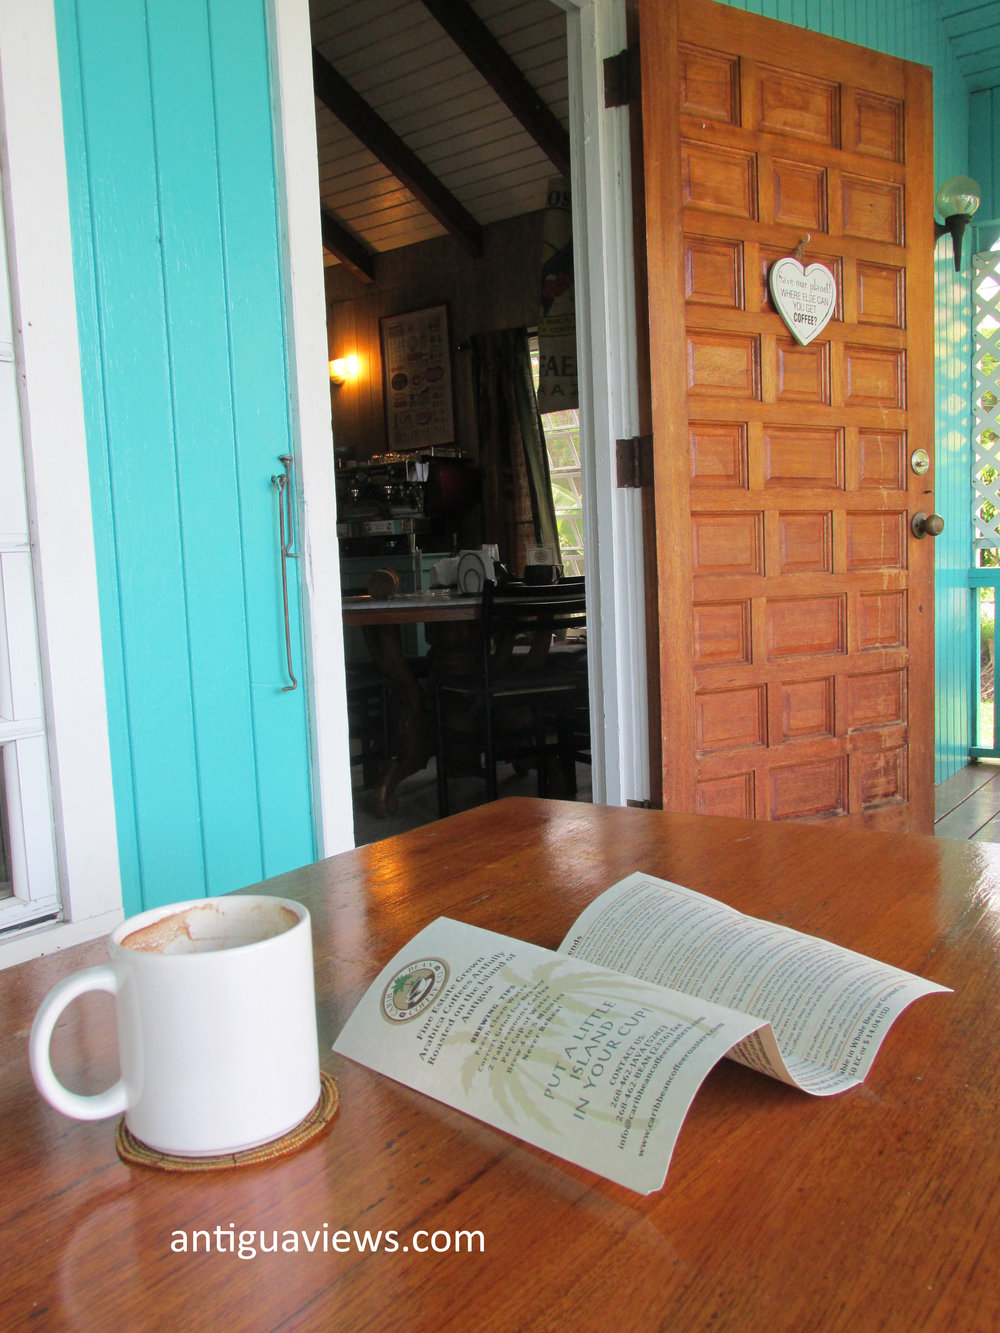 Enjoying a 'Hurricane Brew' at the Carib Bean coffee company in Antigua. Photo by Jennie Ritchie.